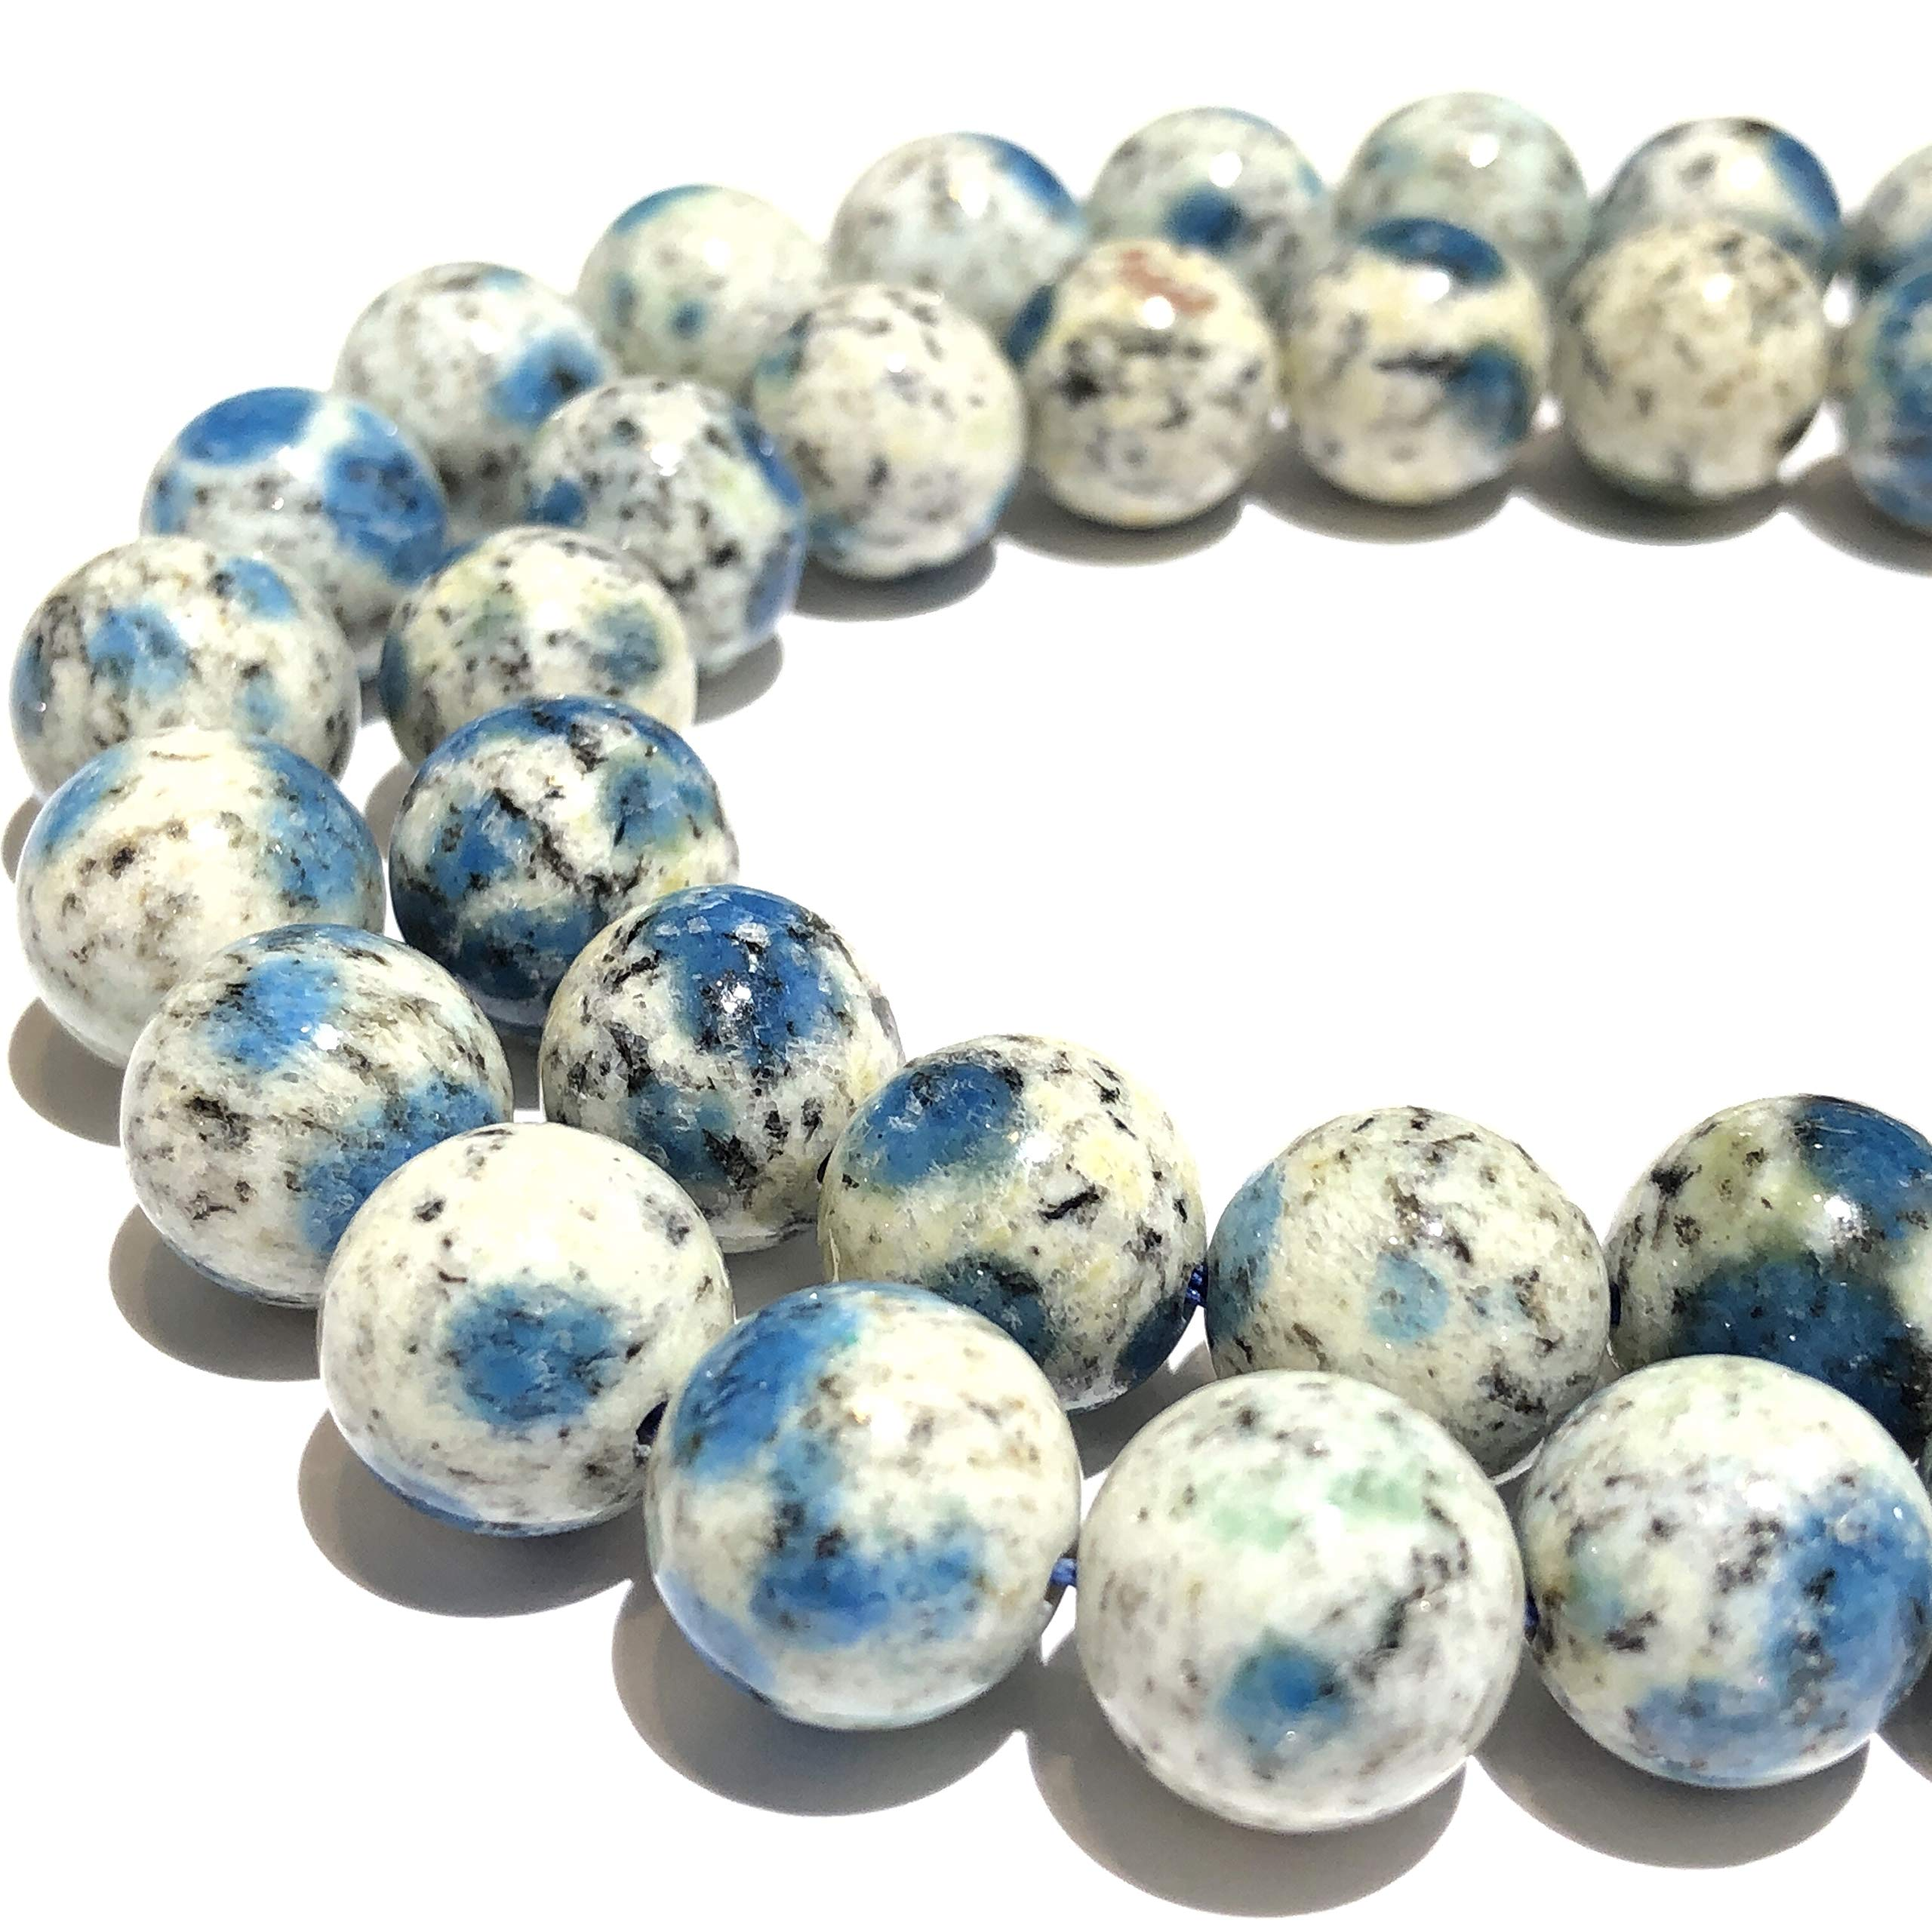 [ABCgems] Extremely Rare Himalayas K2 Azurite in Granite (Occasionally Inclusions with Apatite & Malachite) 12mm Smooth Round Beads for Beading & Jewelry Making